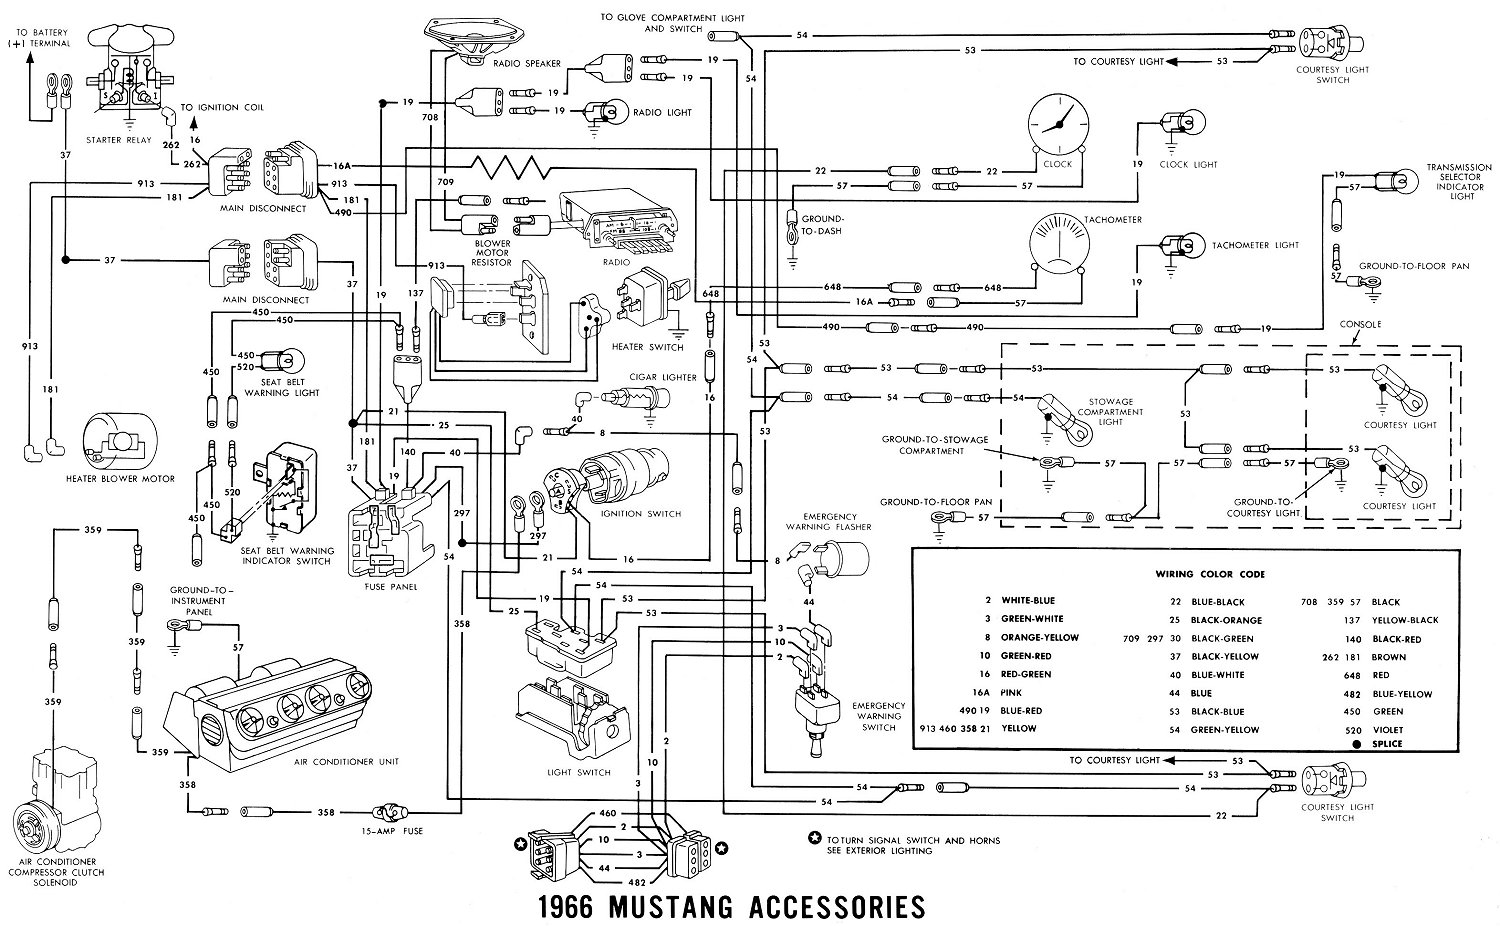 66acces1 1966 mustang wiring diagrams average joe restoration electrical wiring schematic at alyssarenee.co